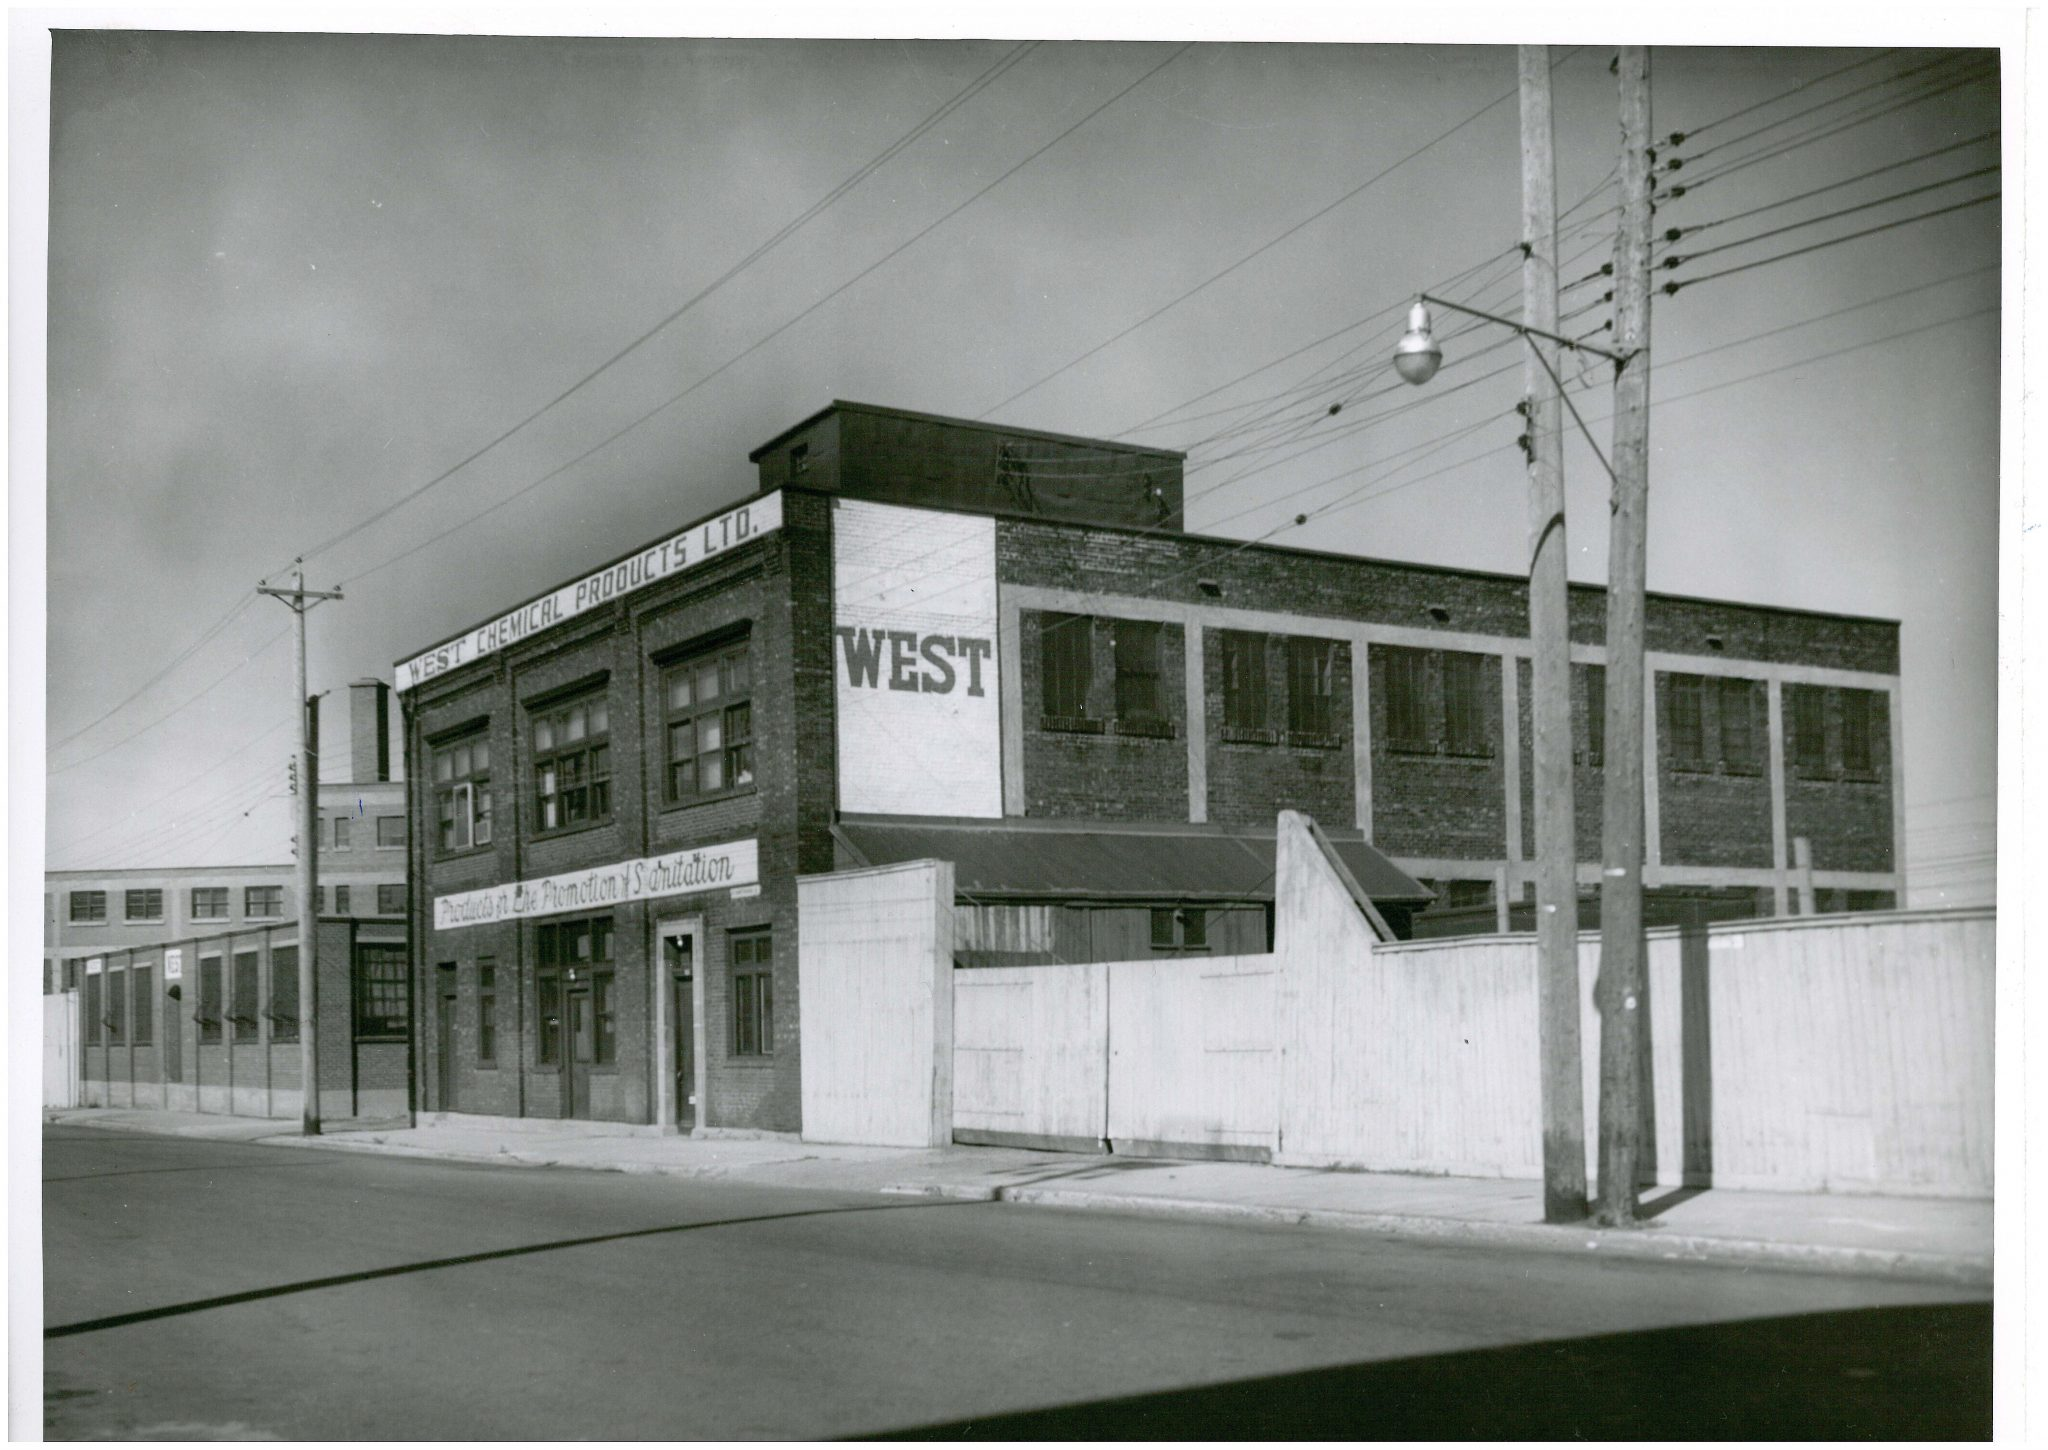 Historical building, 1958